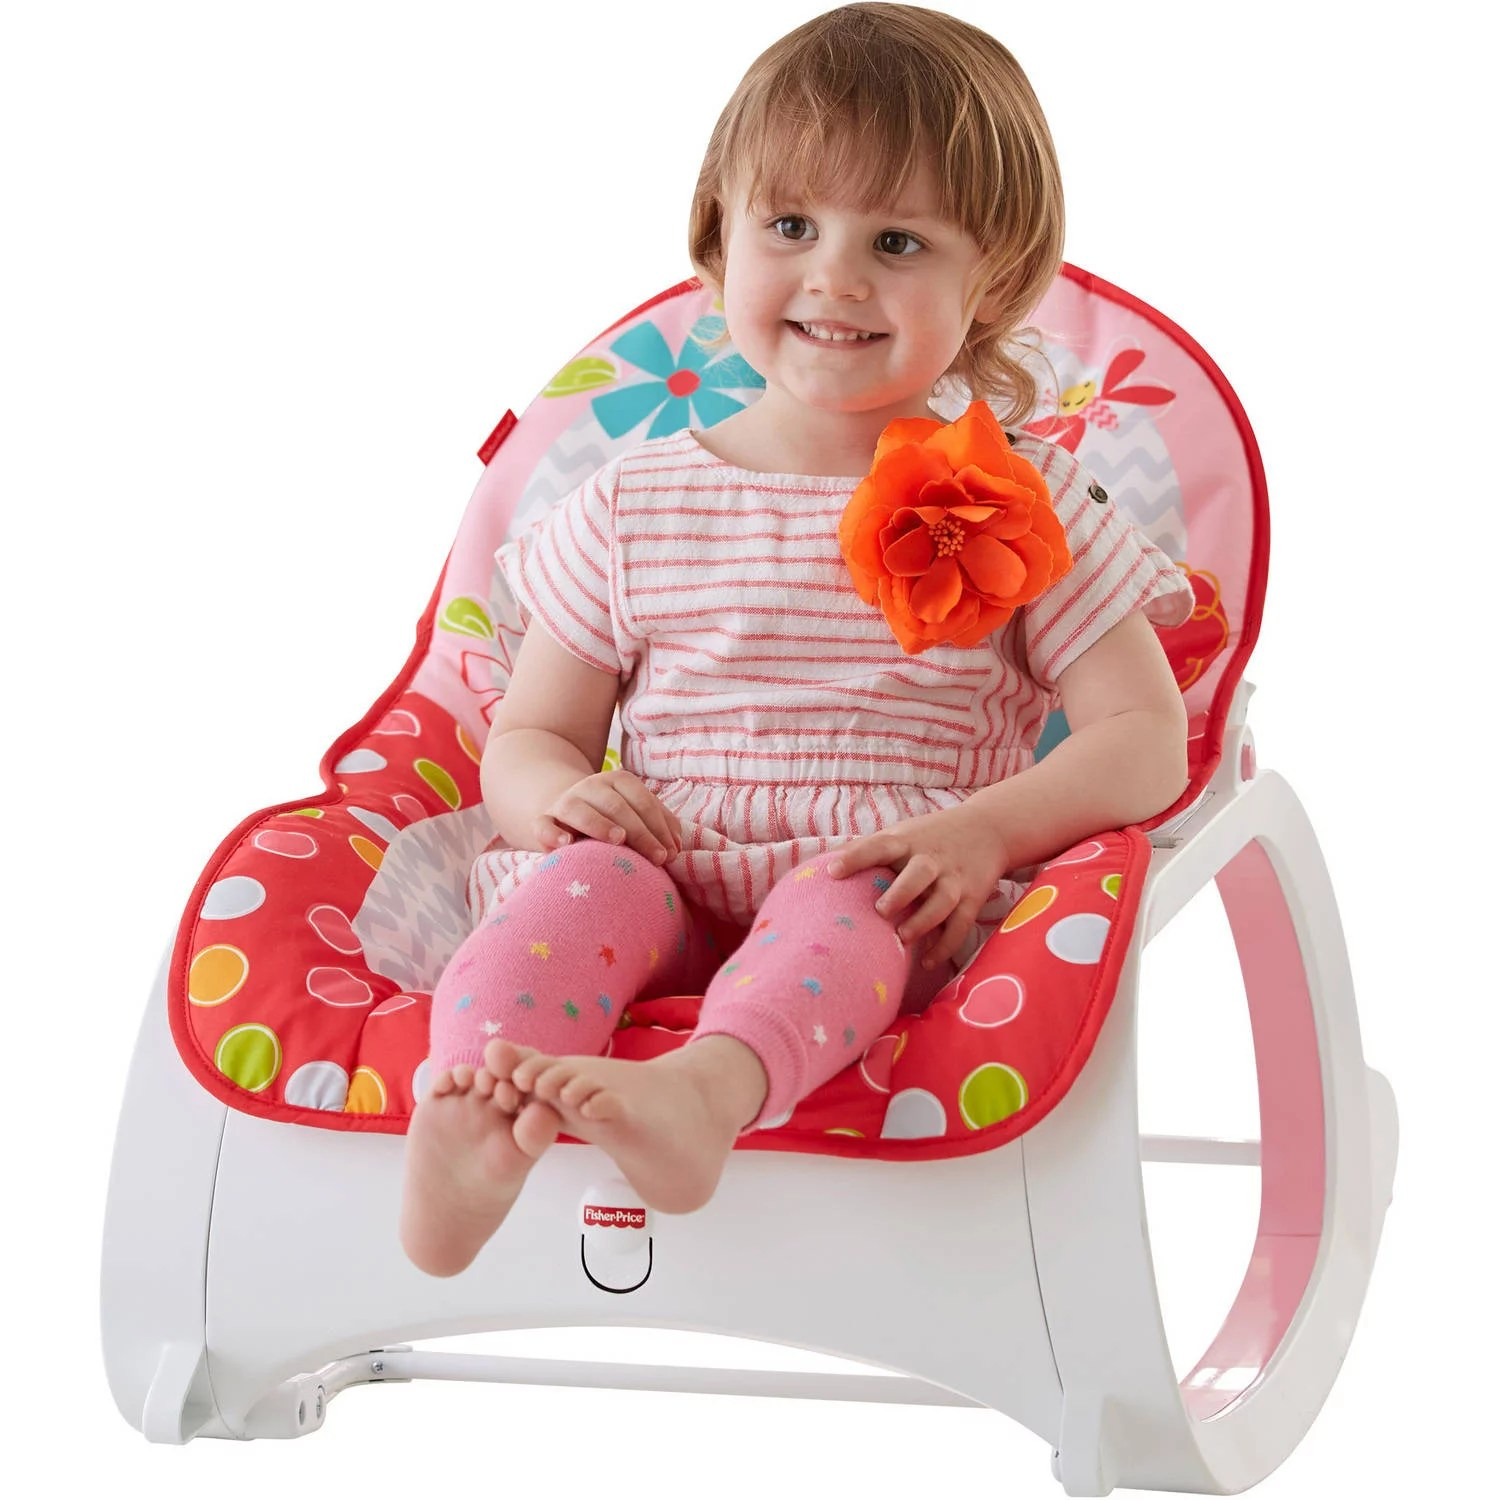 Toddler Chairs Fisher Price Infant To Toddler Rocker Baby Seat Bouncer